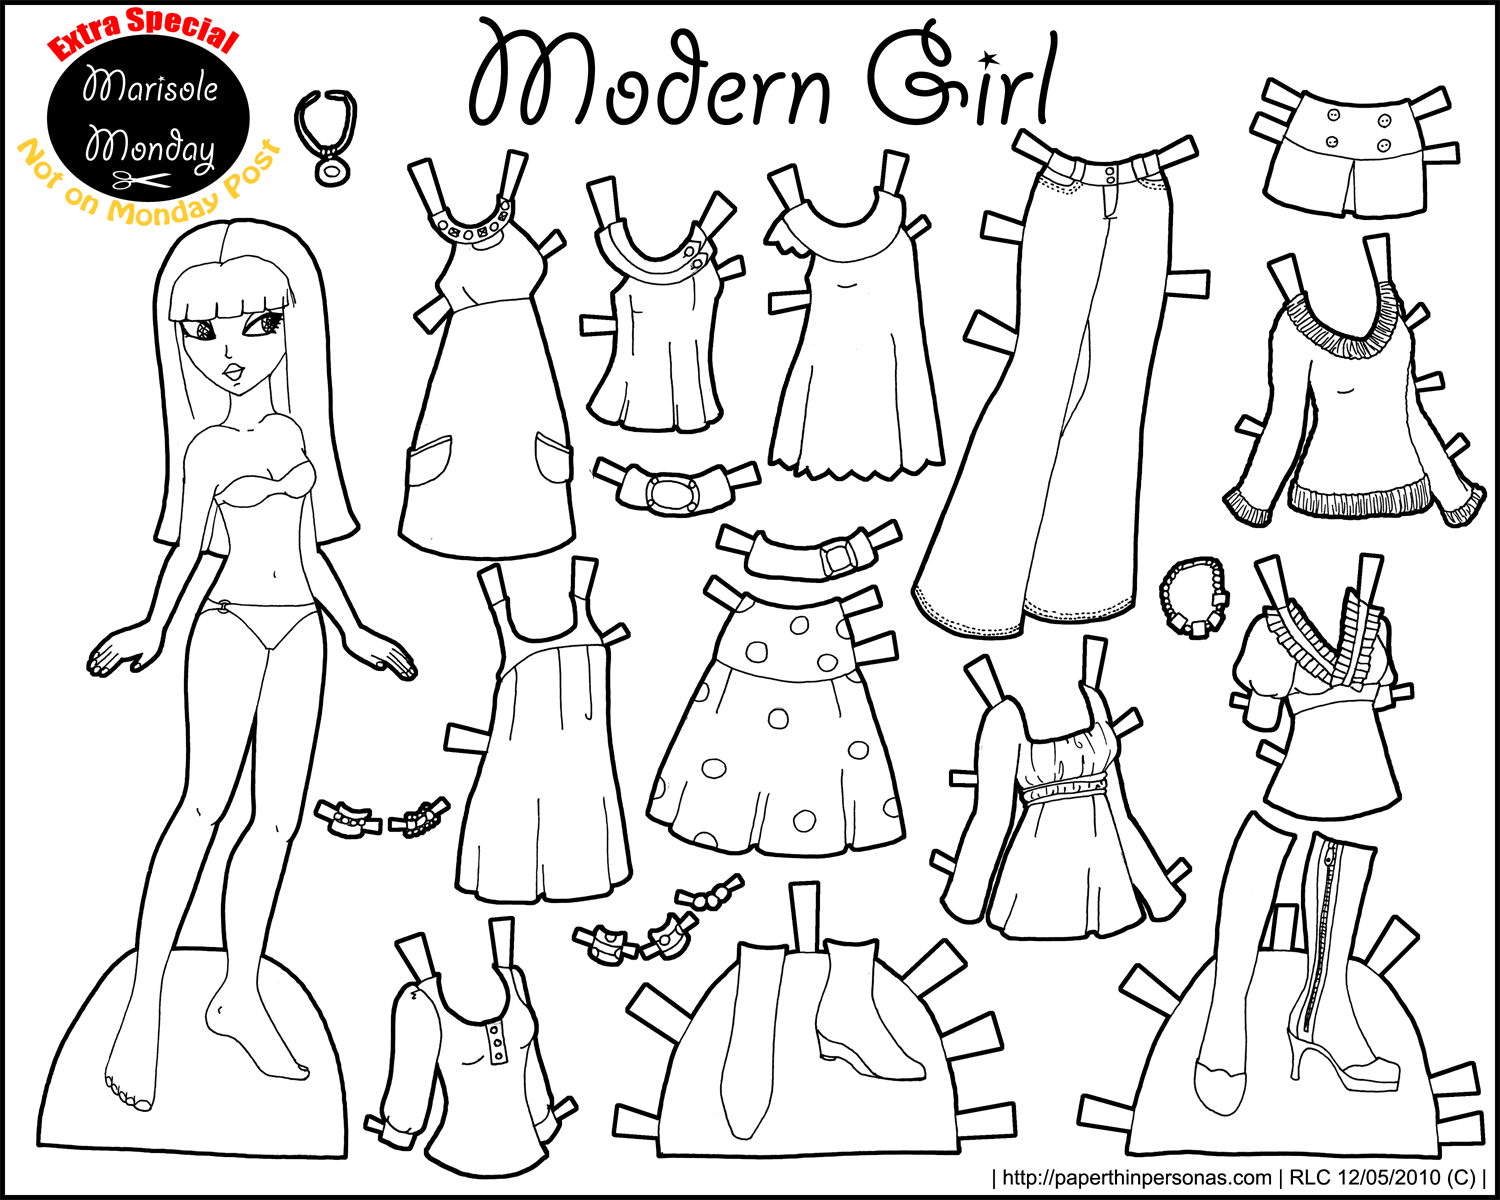 Universal image pertaining to paper doll printable